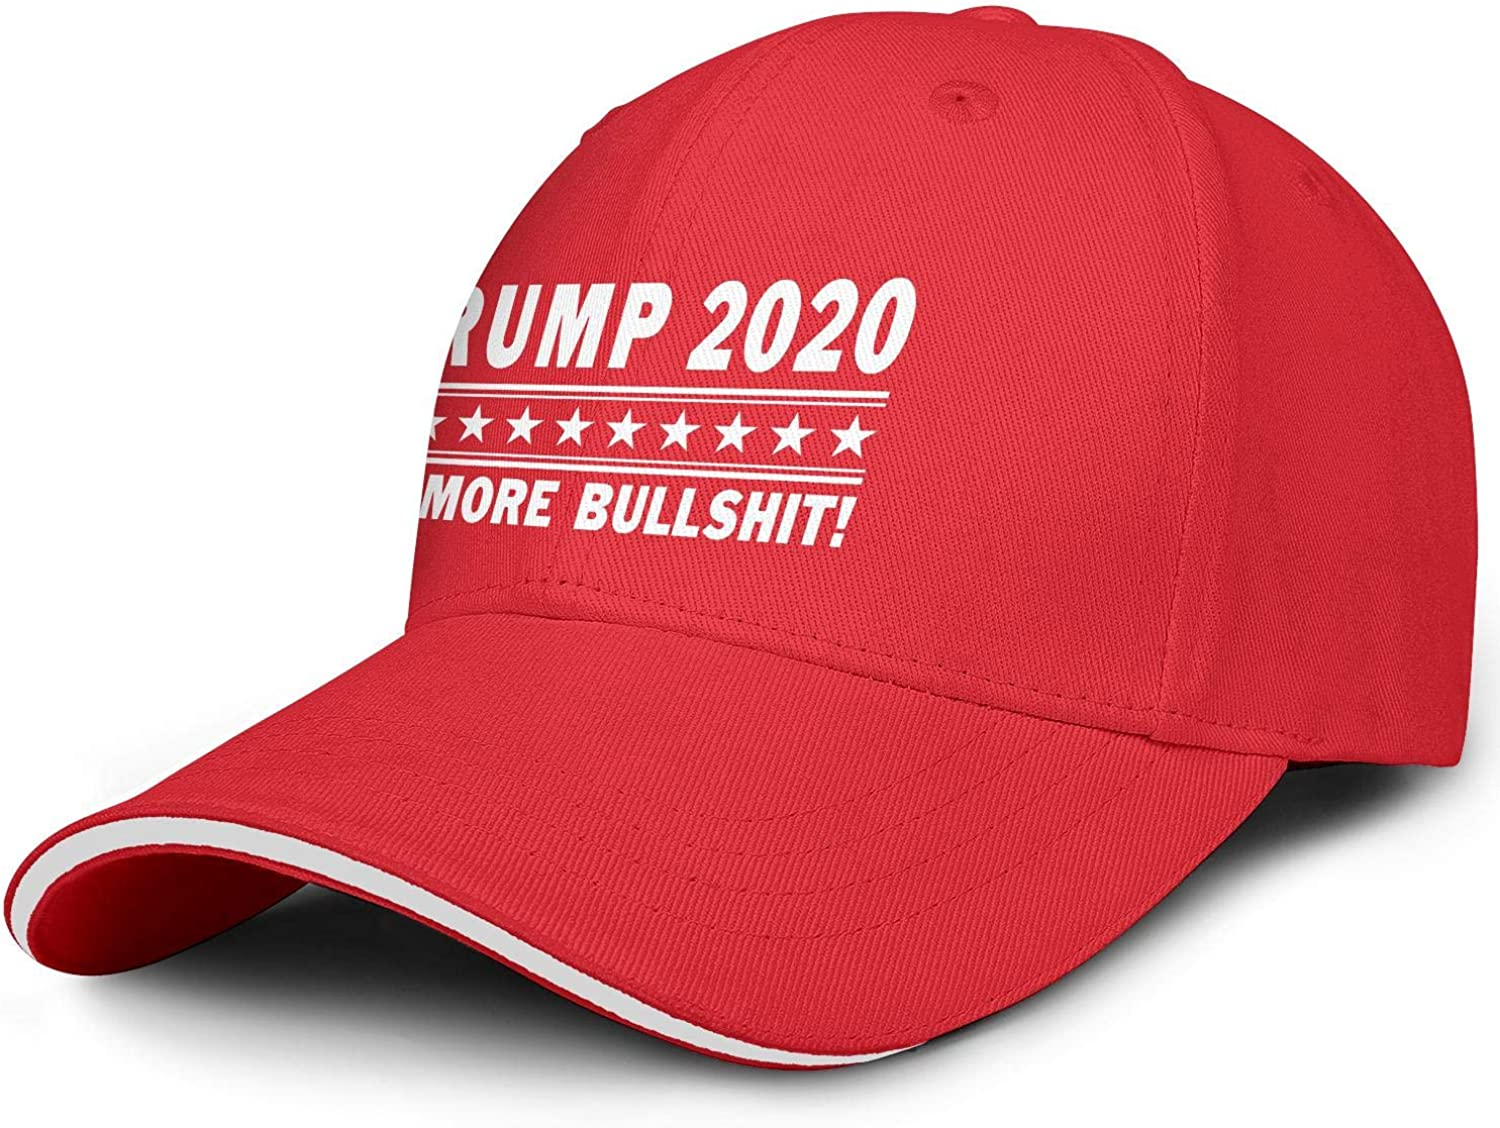 ahtbht Trump 2020 Star White Snapback Hats Hip Hop Athletic Unisex Baseball Cap Designed